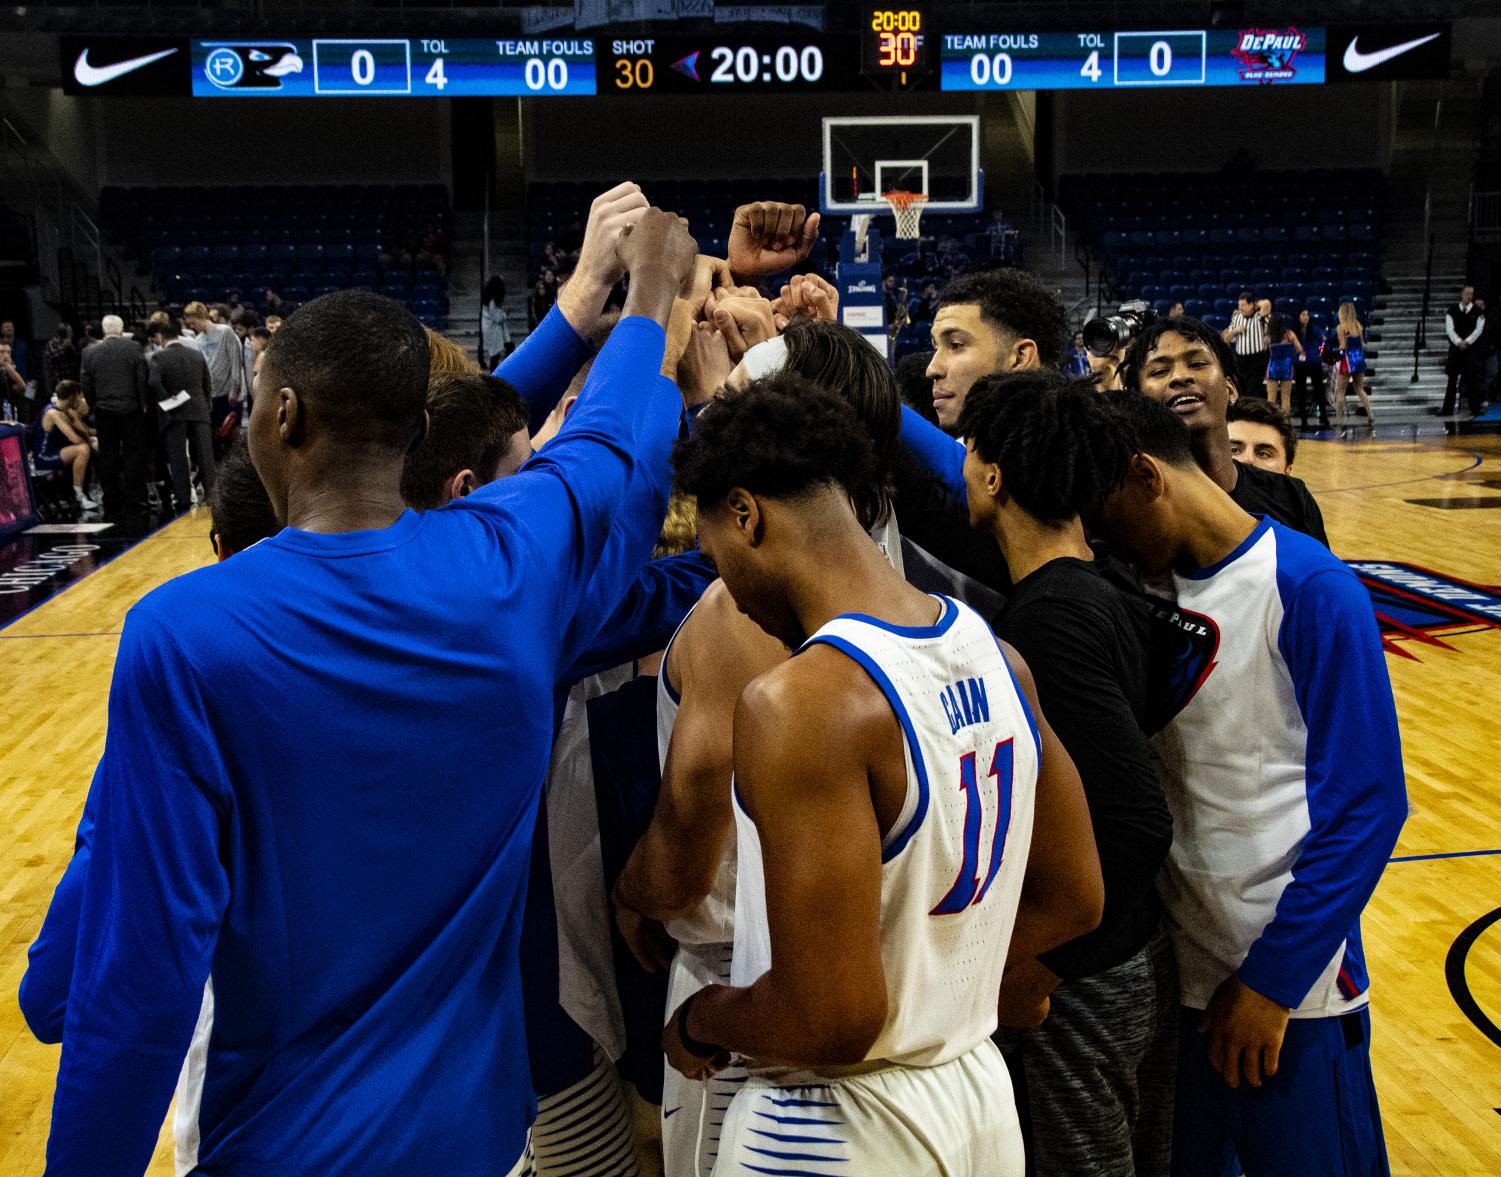 The DePaul Blue Demon men's basketball team huddles before a game. [Richard Bodee-The DePaulia]